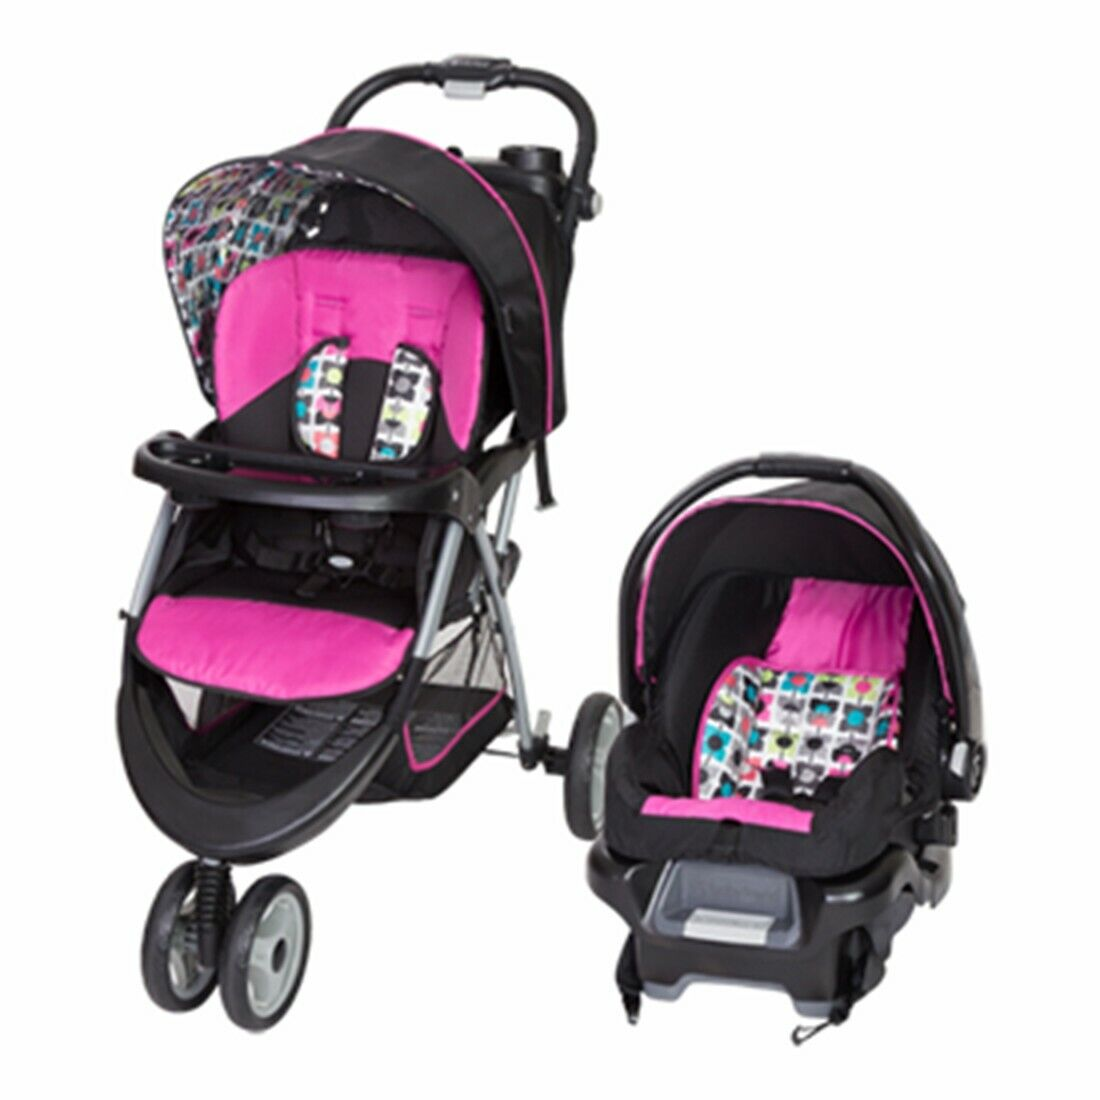 Baby Stroller Travel System and Infant Car Seat Baby Trend G